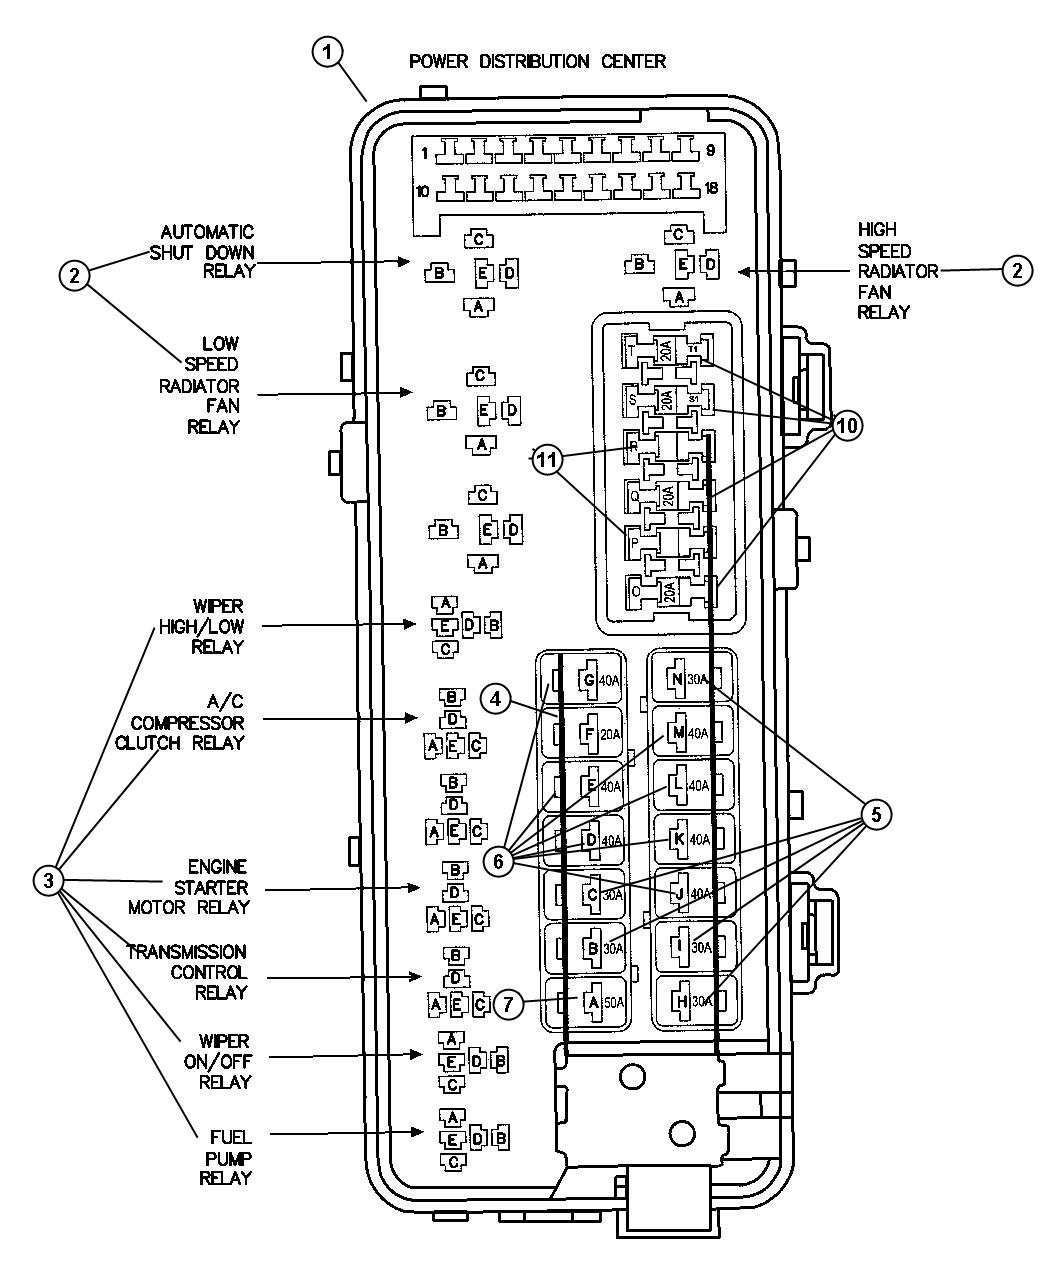 1996 chrysler concorde fuse box diagram 1996 automotive wiring description 00i78616 chrysler concorde fuse box diagram